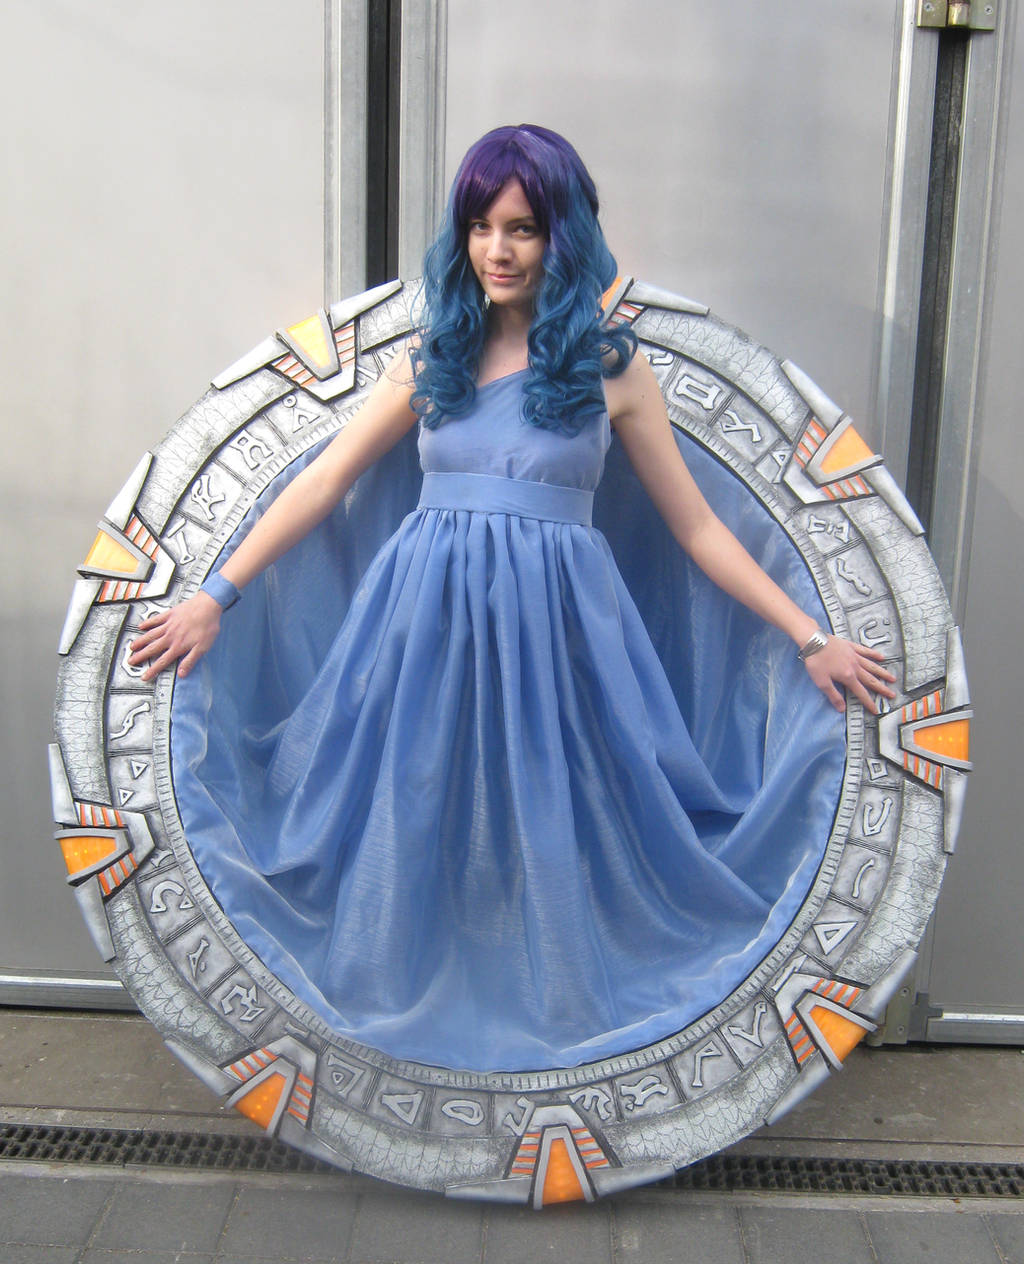 The Stargate girl by Nyima-chan